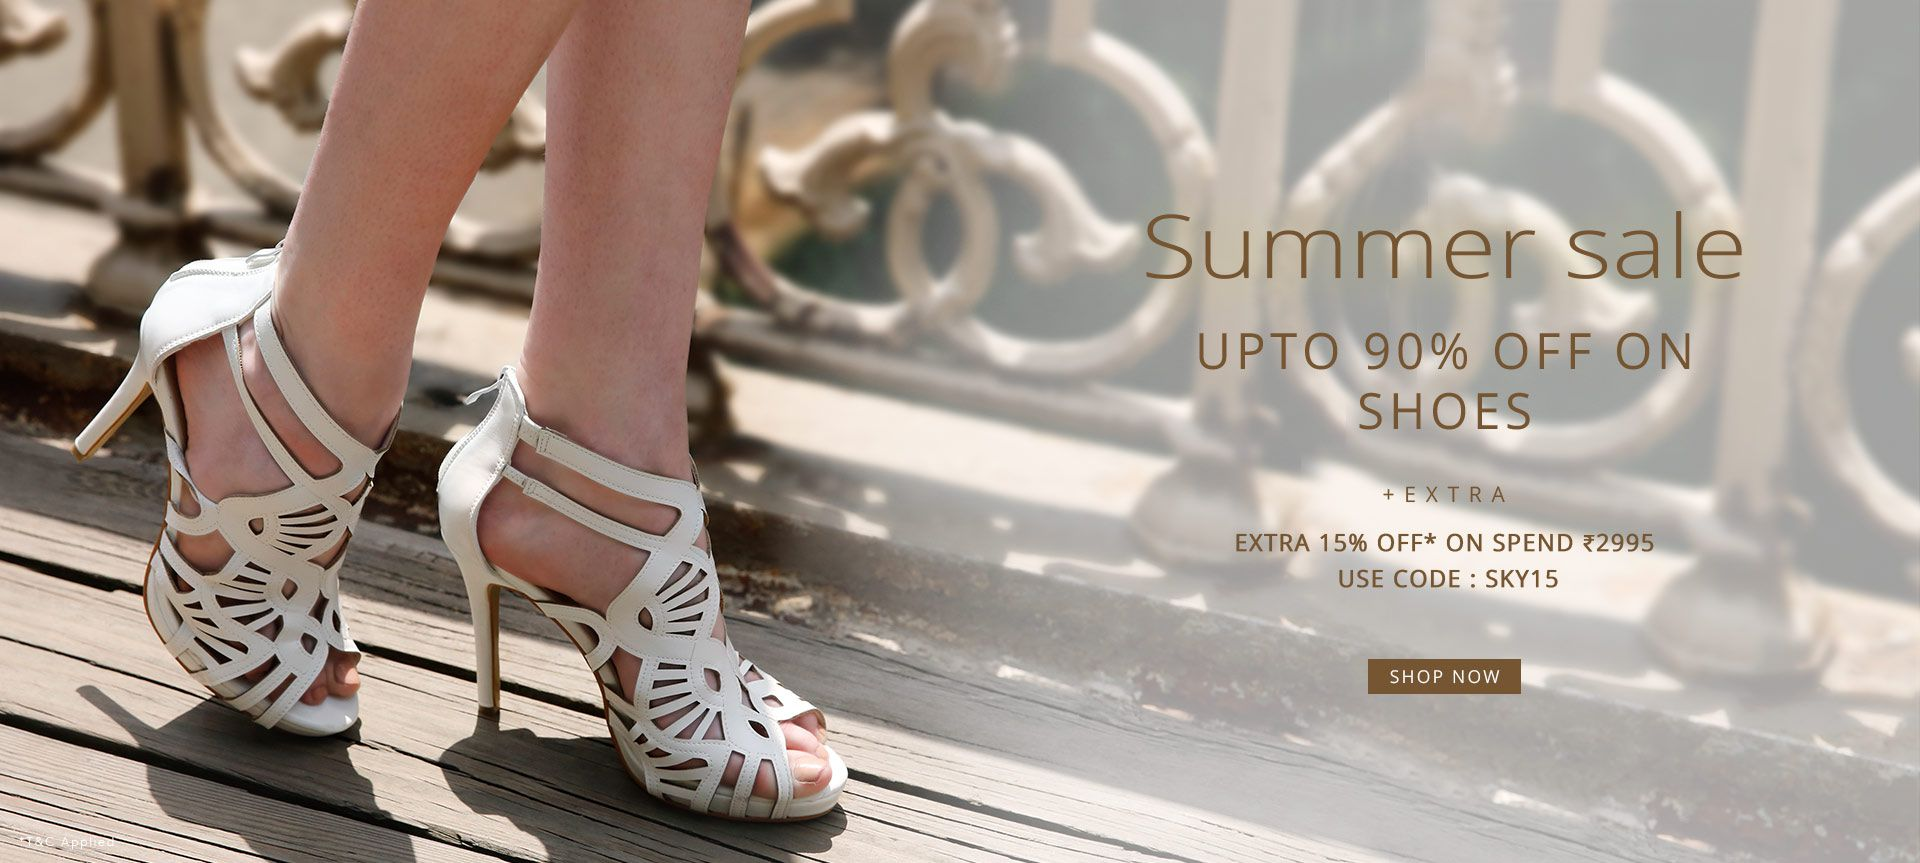 SUMMER SALE UPTO 90% OFF ON SHOES